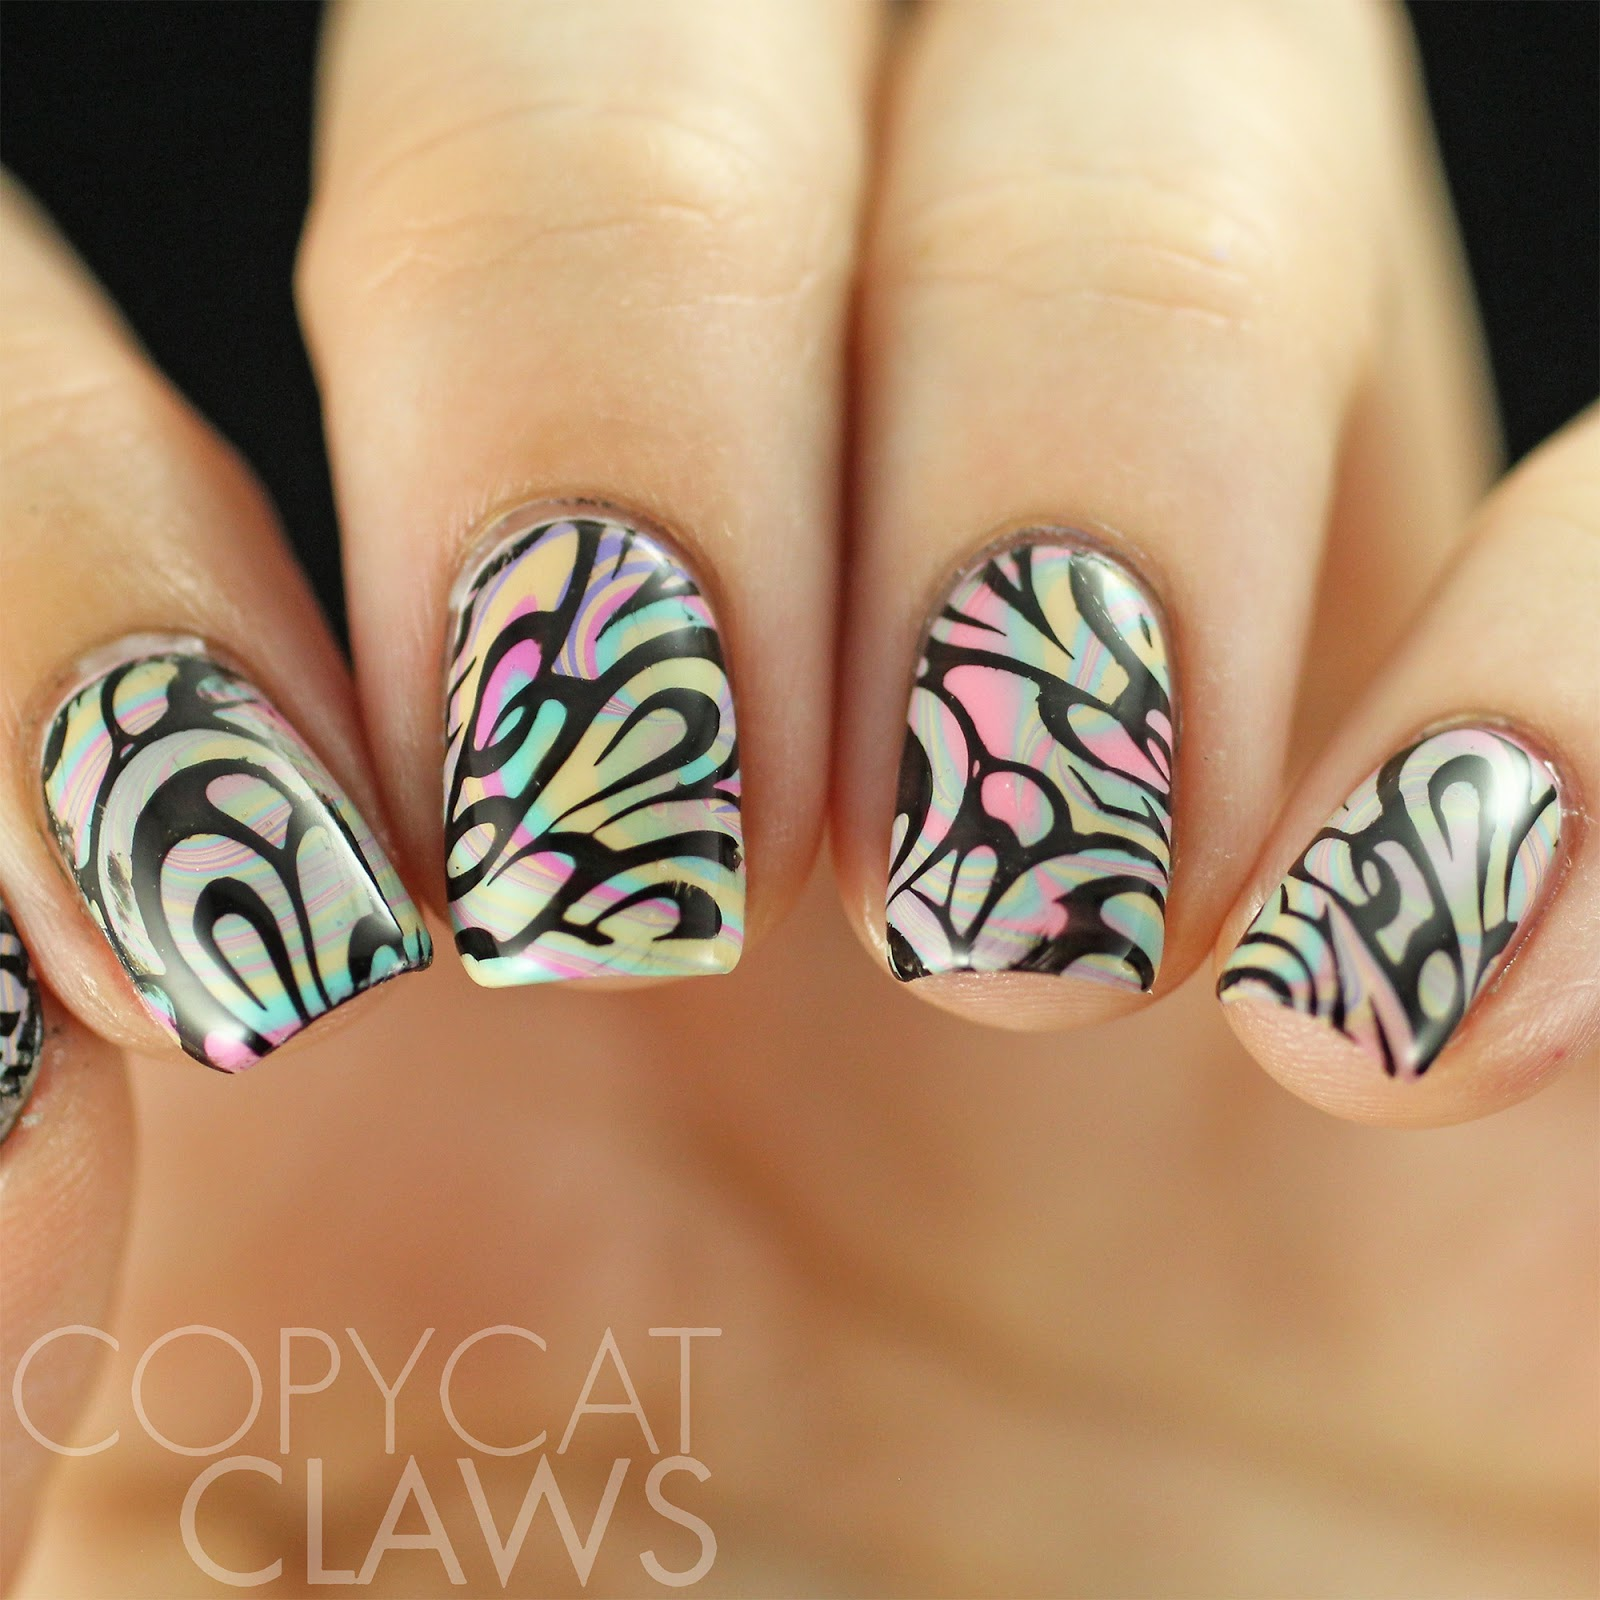 Copycat claws 40 great nail art ideas nude color prinsesfo Images